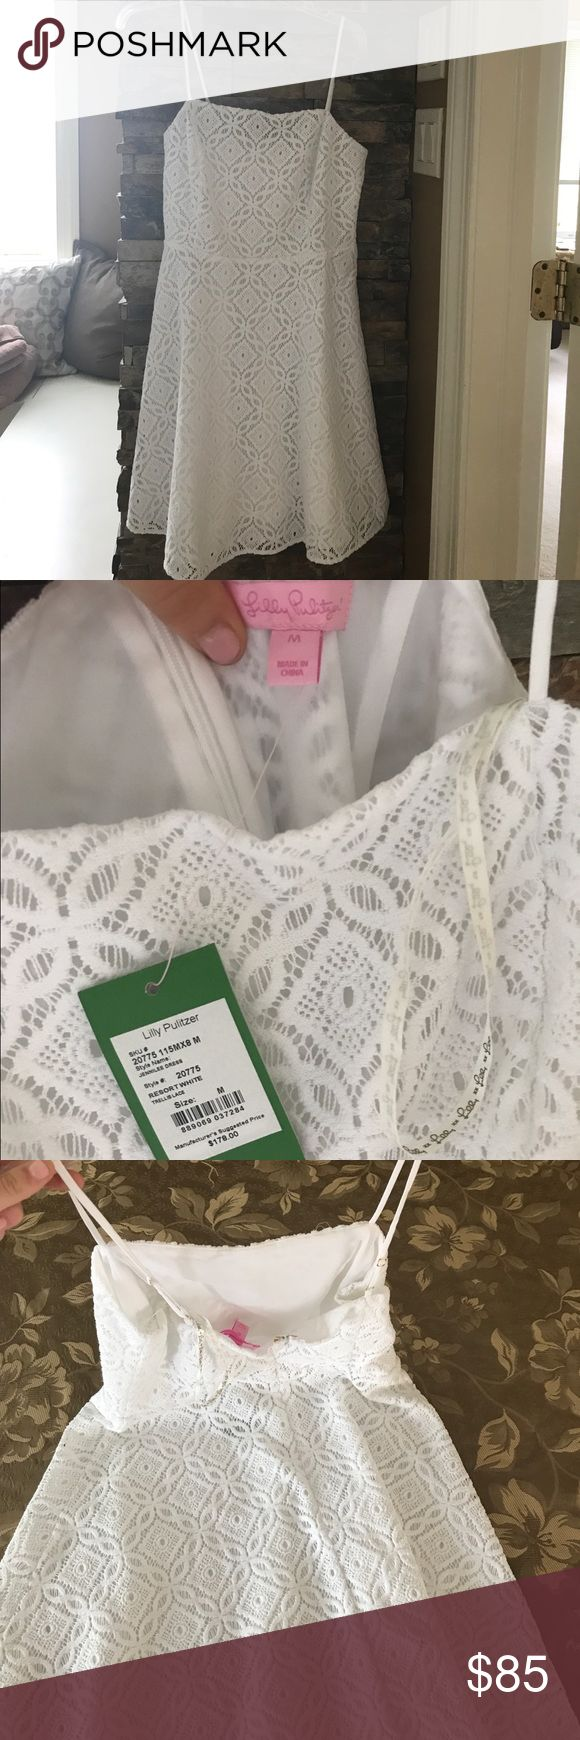 Lilly Pulitzer White Dress NWT (M) New with tags, was purchased but didn't fit owner. Not wore, brand new dress. Intricate detailed lace. Size M. Original Price: $178 Lilly Pulitzer Dresses